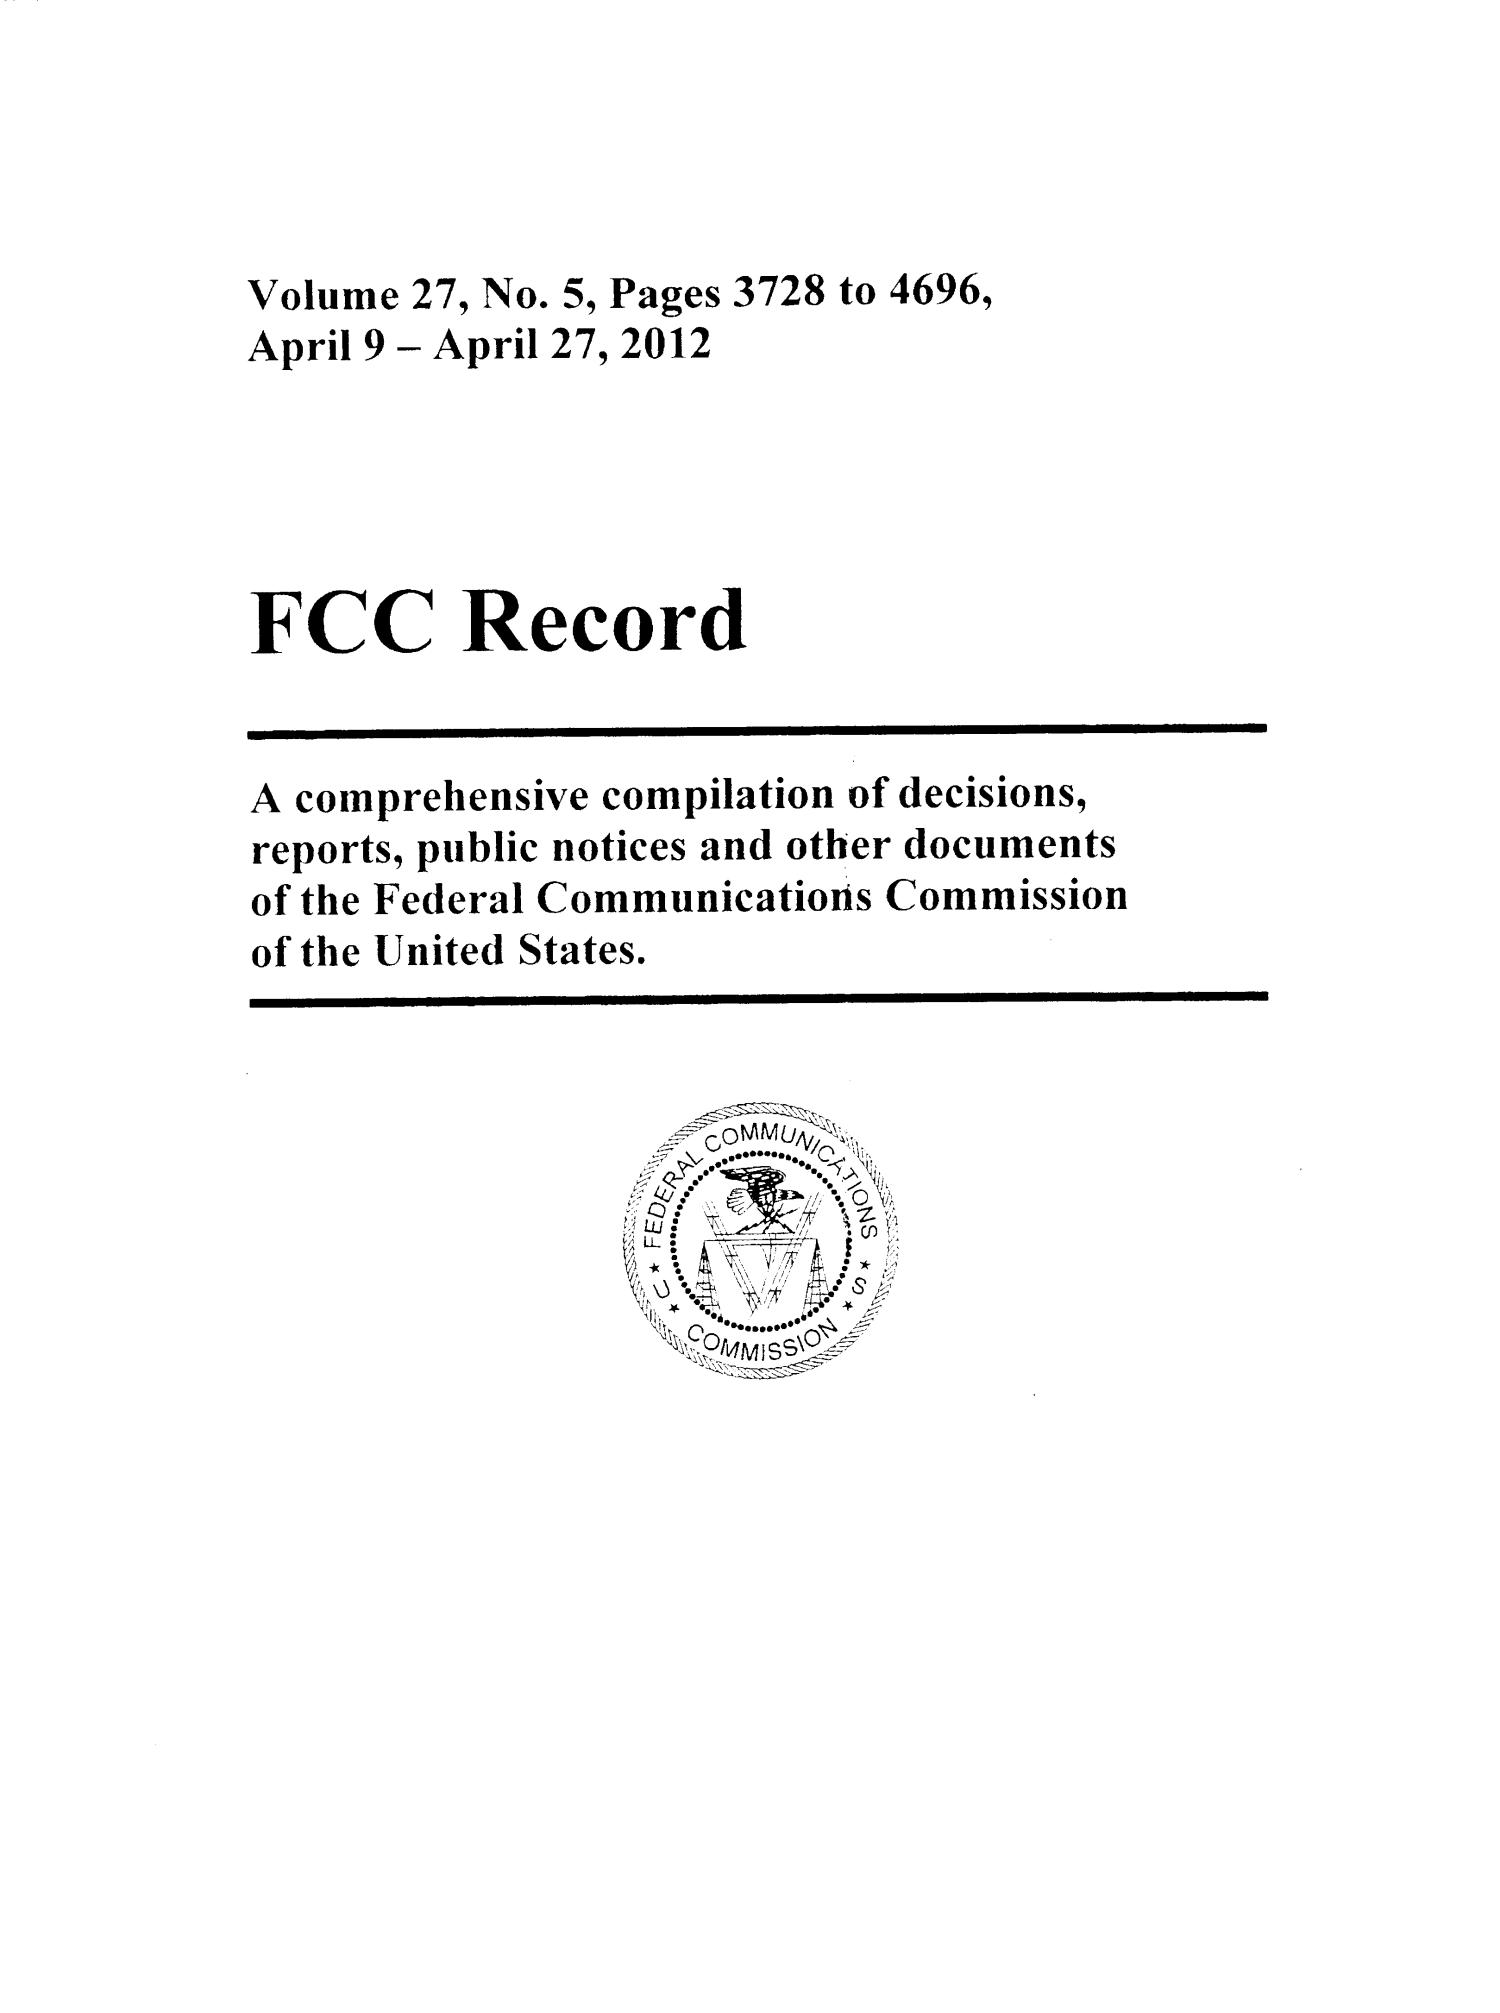 FCC Record, Volume 27, No. 5, Pages 3728 to 4696, April 9 - April 27, 2012                                                                                                      Front Cover